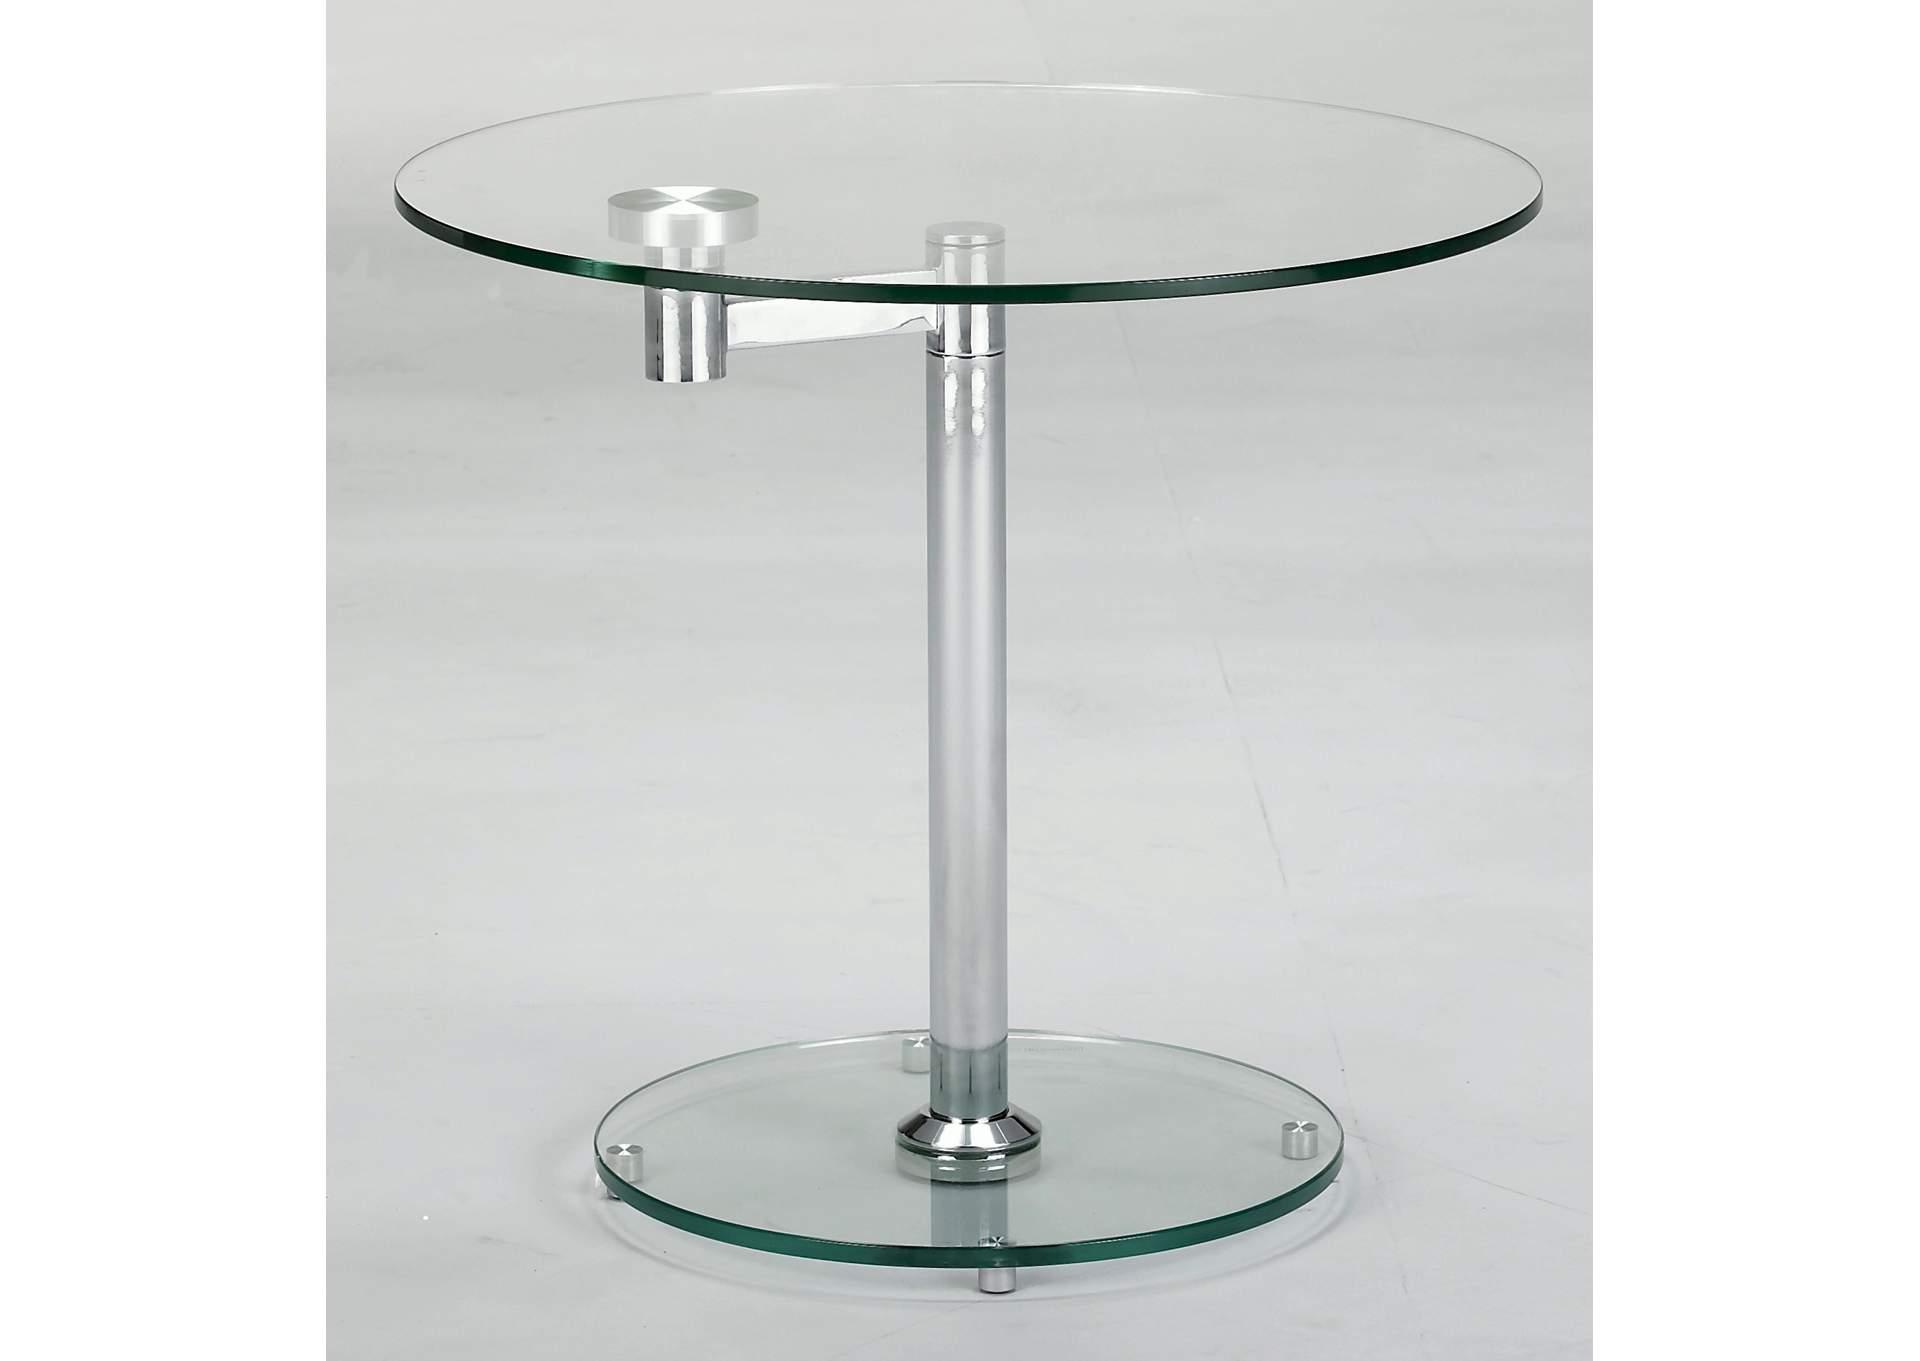 Chrome 8090 Round Glass Lamp Table,Chintaly Imports